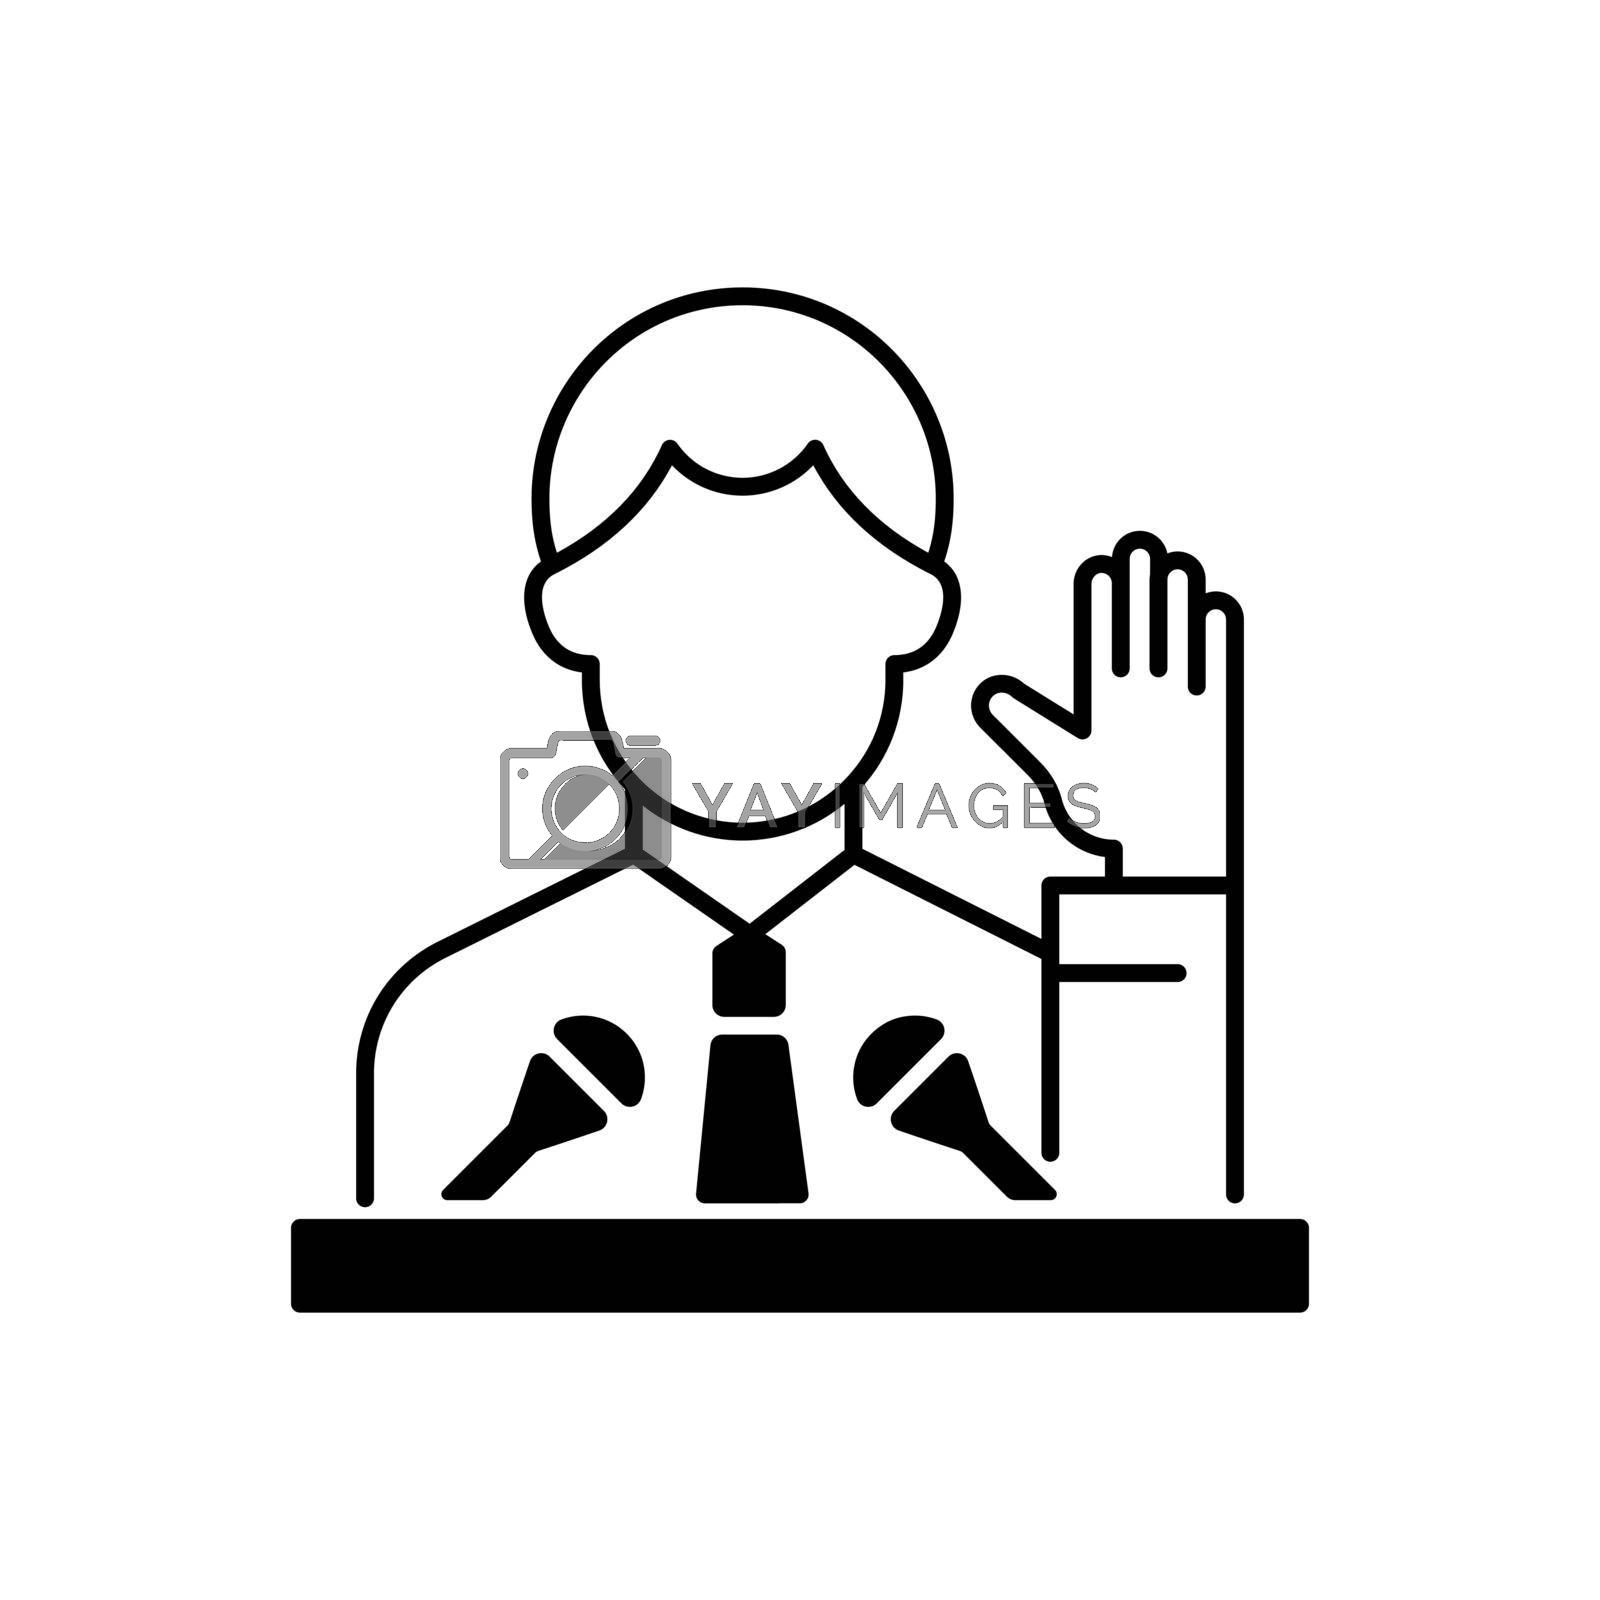 Political elite black linear icon. Public demonstration, speaker from government. Social leadership. High status of influence, power. Outline symbol on white space. Vector isolated illustration